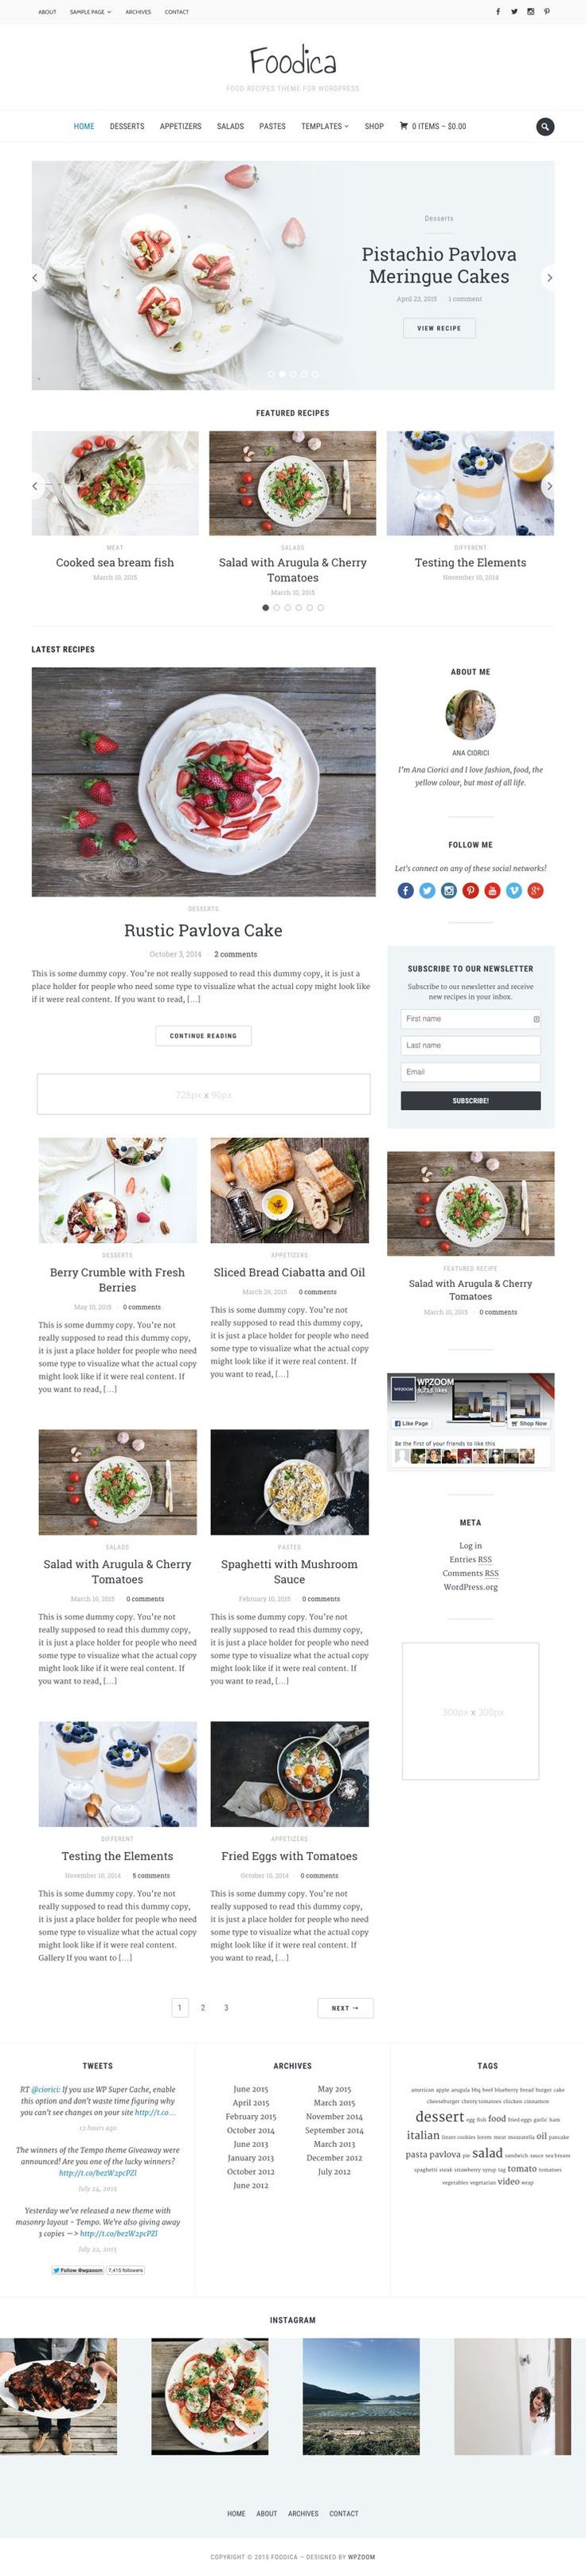 Foodica WordPress Food Recipes Magazine Theme - www.wpchats.com